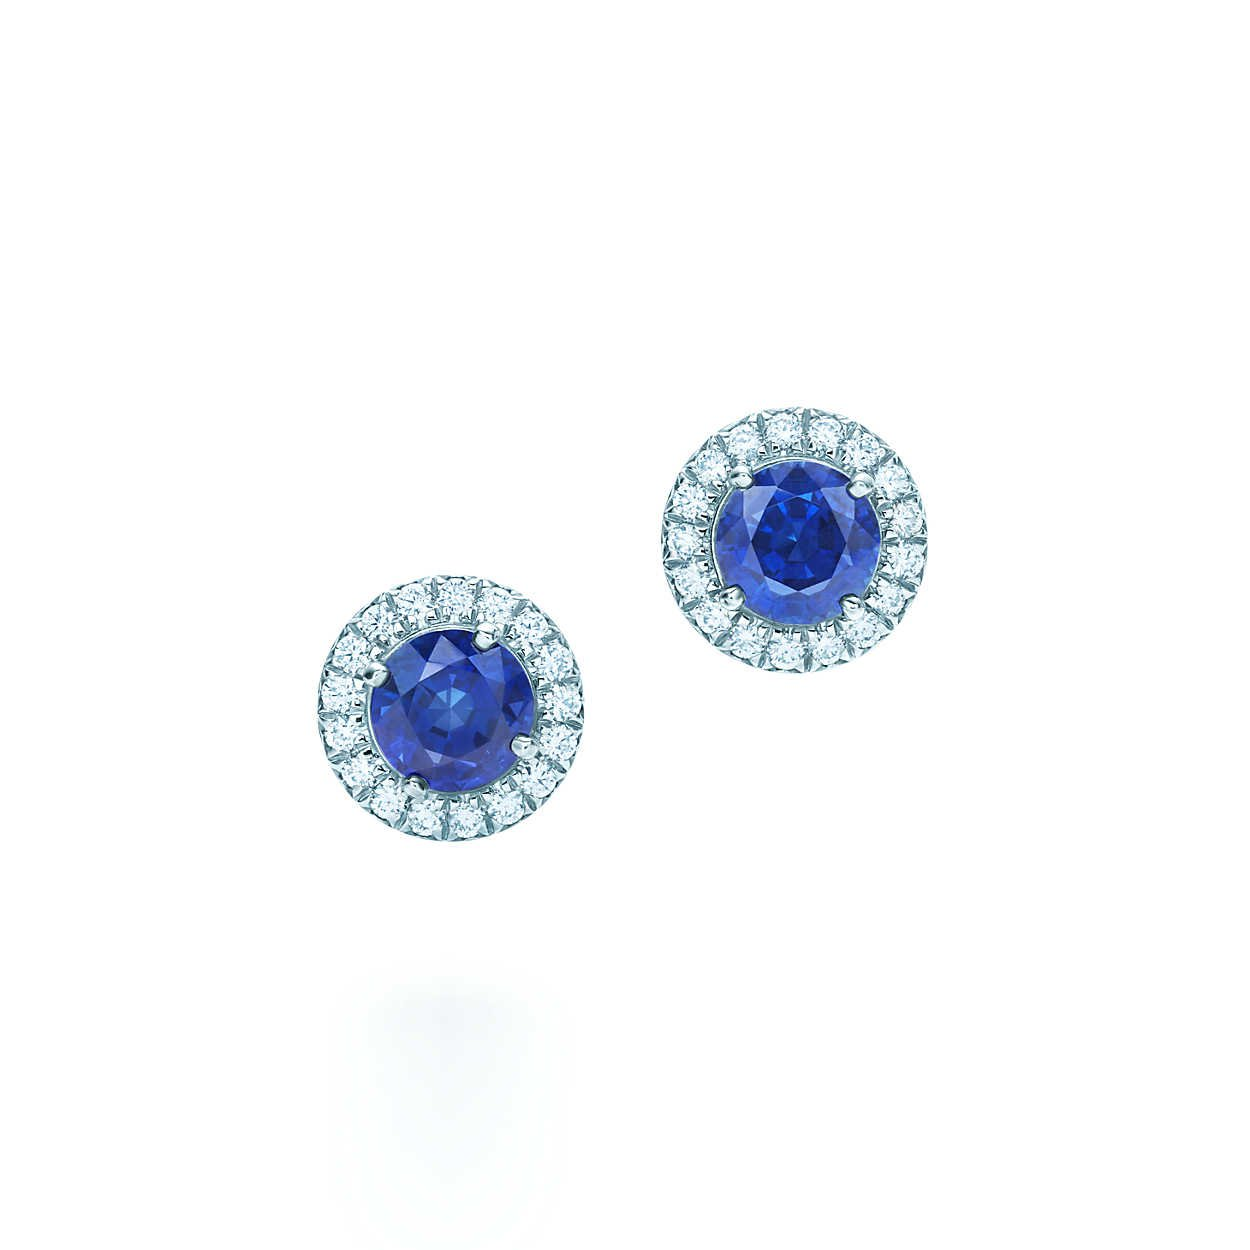 Tiffany Soleste earrings in platinum with sapphires and diamonds. | Tiffany & Co.